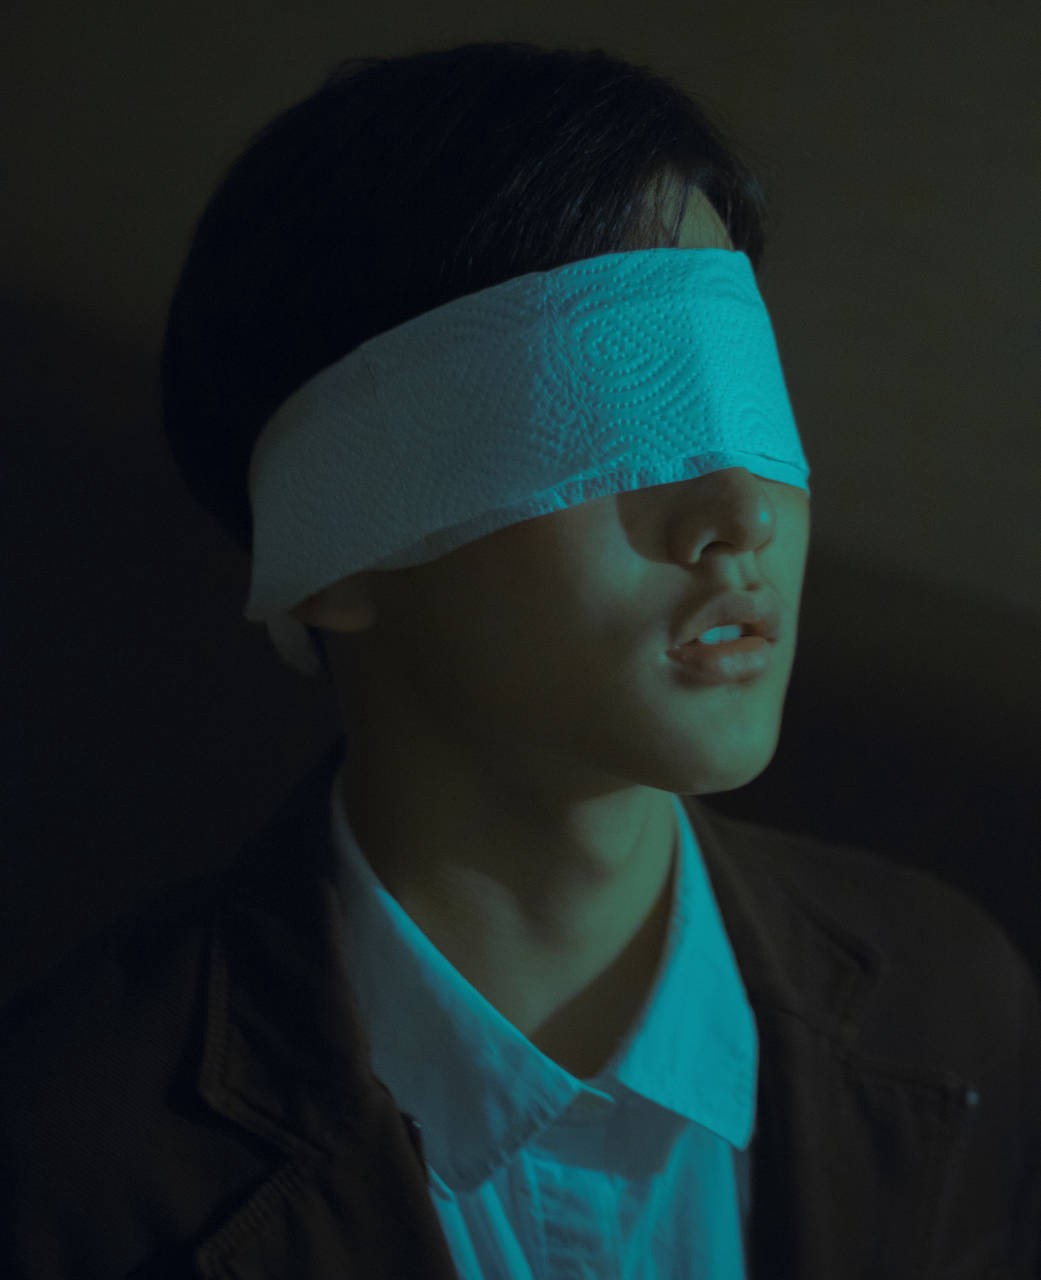 Person with eyes covered